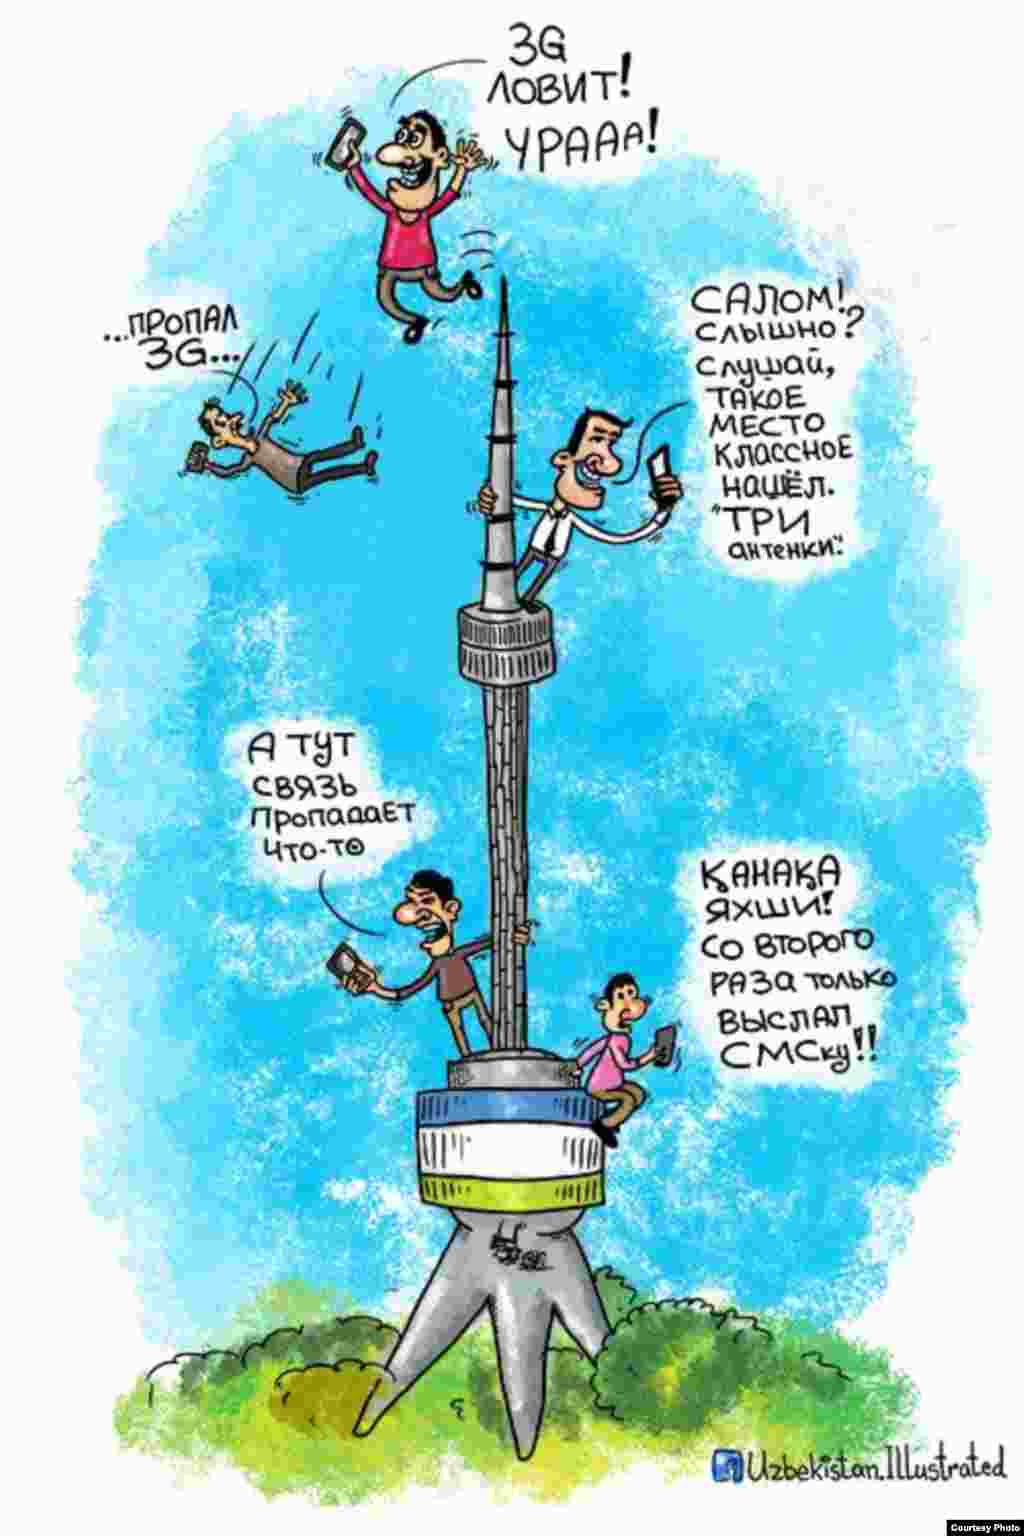 """High-quality mobile communication in Uzbekistan."" Against the backdrop of a crisis last summer at market leader Uzdunrobita that left millions of Uzbek customers without service, Rakhimov is making fun of signal quality. The figure at the top of the tower proclaims, ""I have 3G access,"" while the figure at the top left says, ""My 3G fell through."" The figure at the top right asks, ""Hello? Can you hear me? This is such a great spot, I found three antennas."" The figure at the bottom complains, ""And my connection is getting lost here somehow."" The figure at bottom right says, ""Not bad, generally -- I managed to send an SMS on my second attempt."""